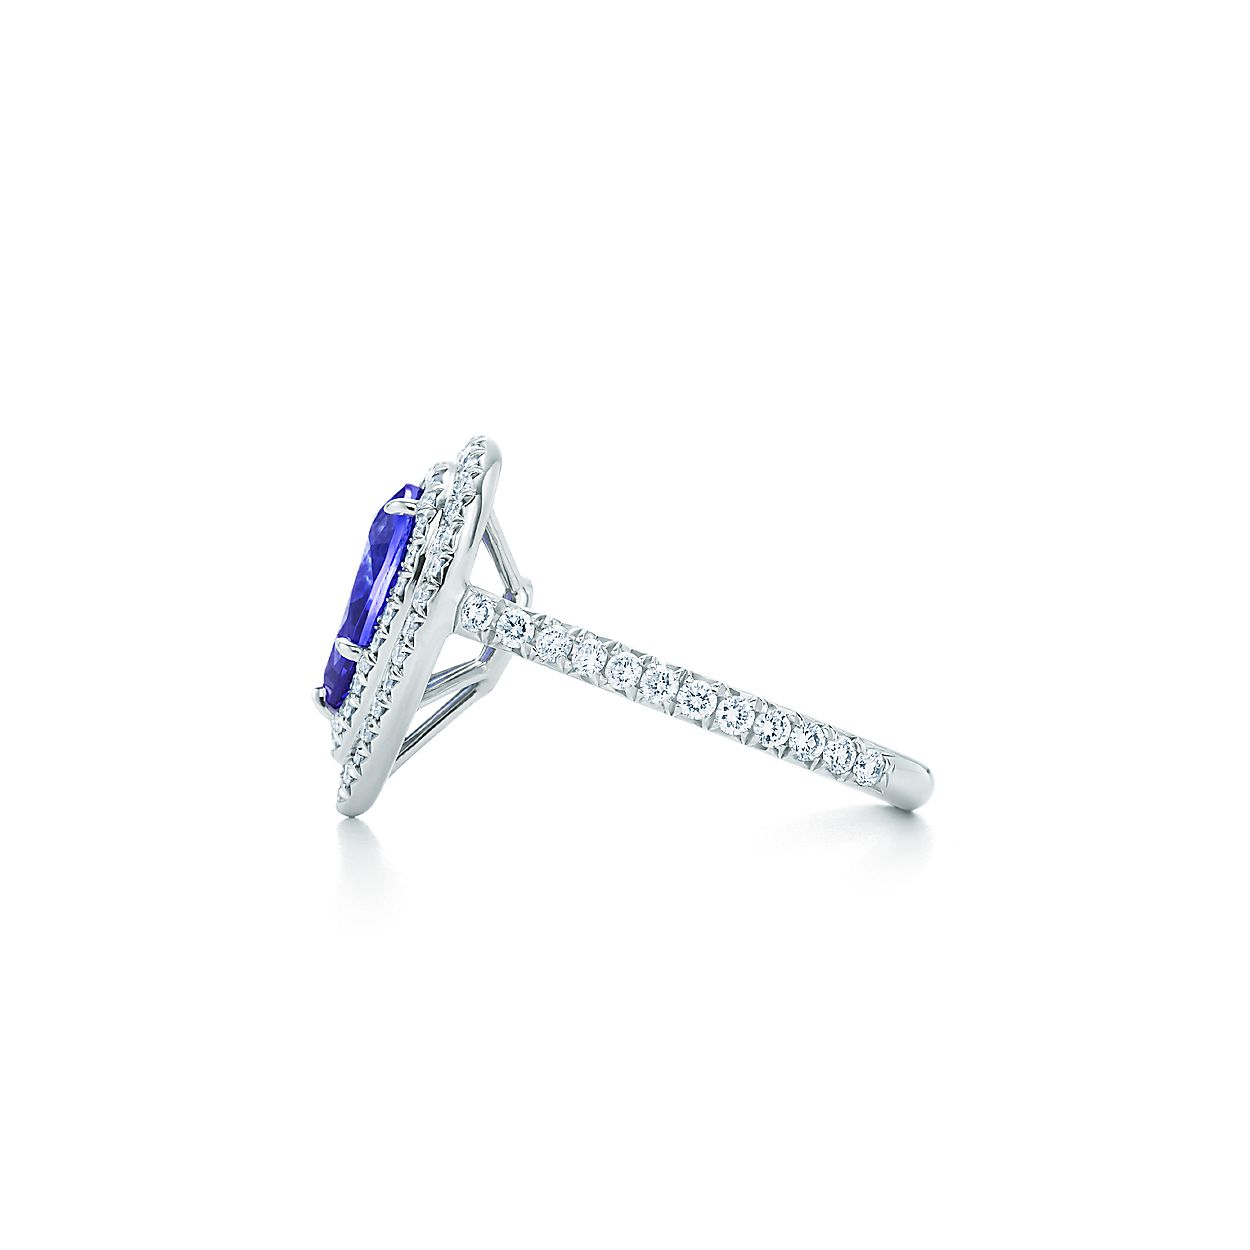 3dc554a9f Tiffany Soleste ring in platinum with diamonds and a tanzanite ...